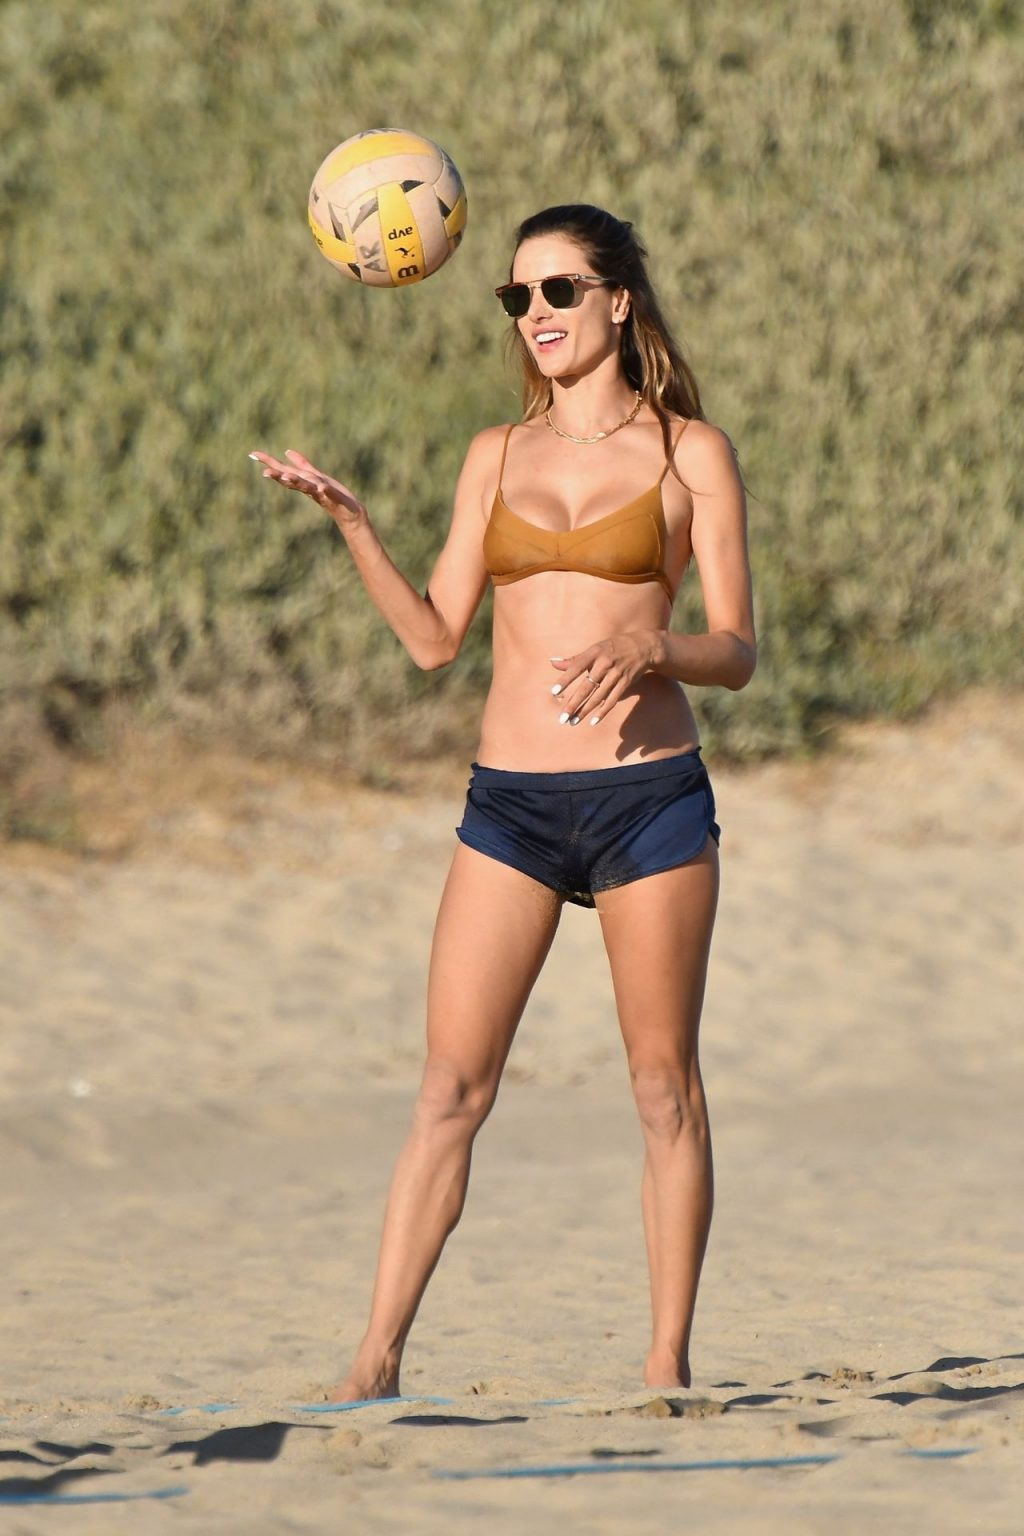 Alessandra Ambrosio Displays Her Slim Figure on the Beach (147 New Photos)